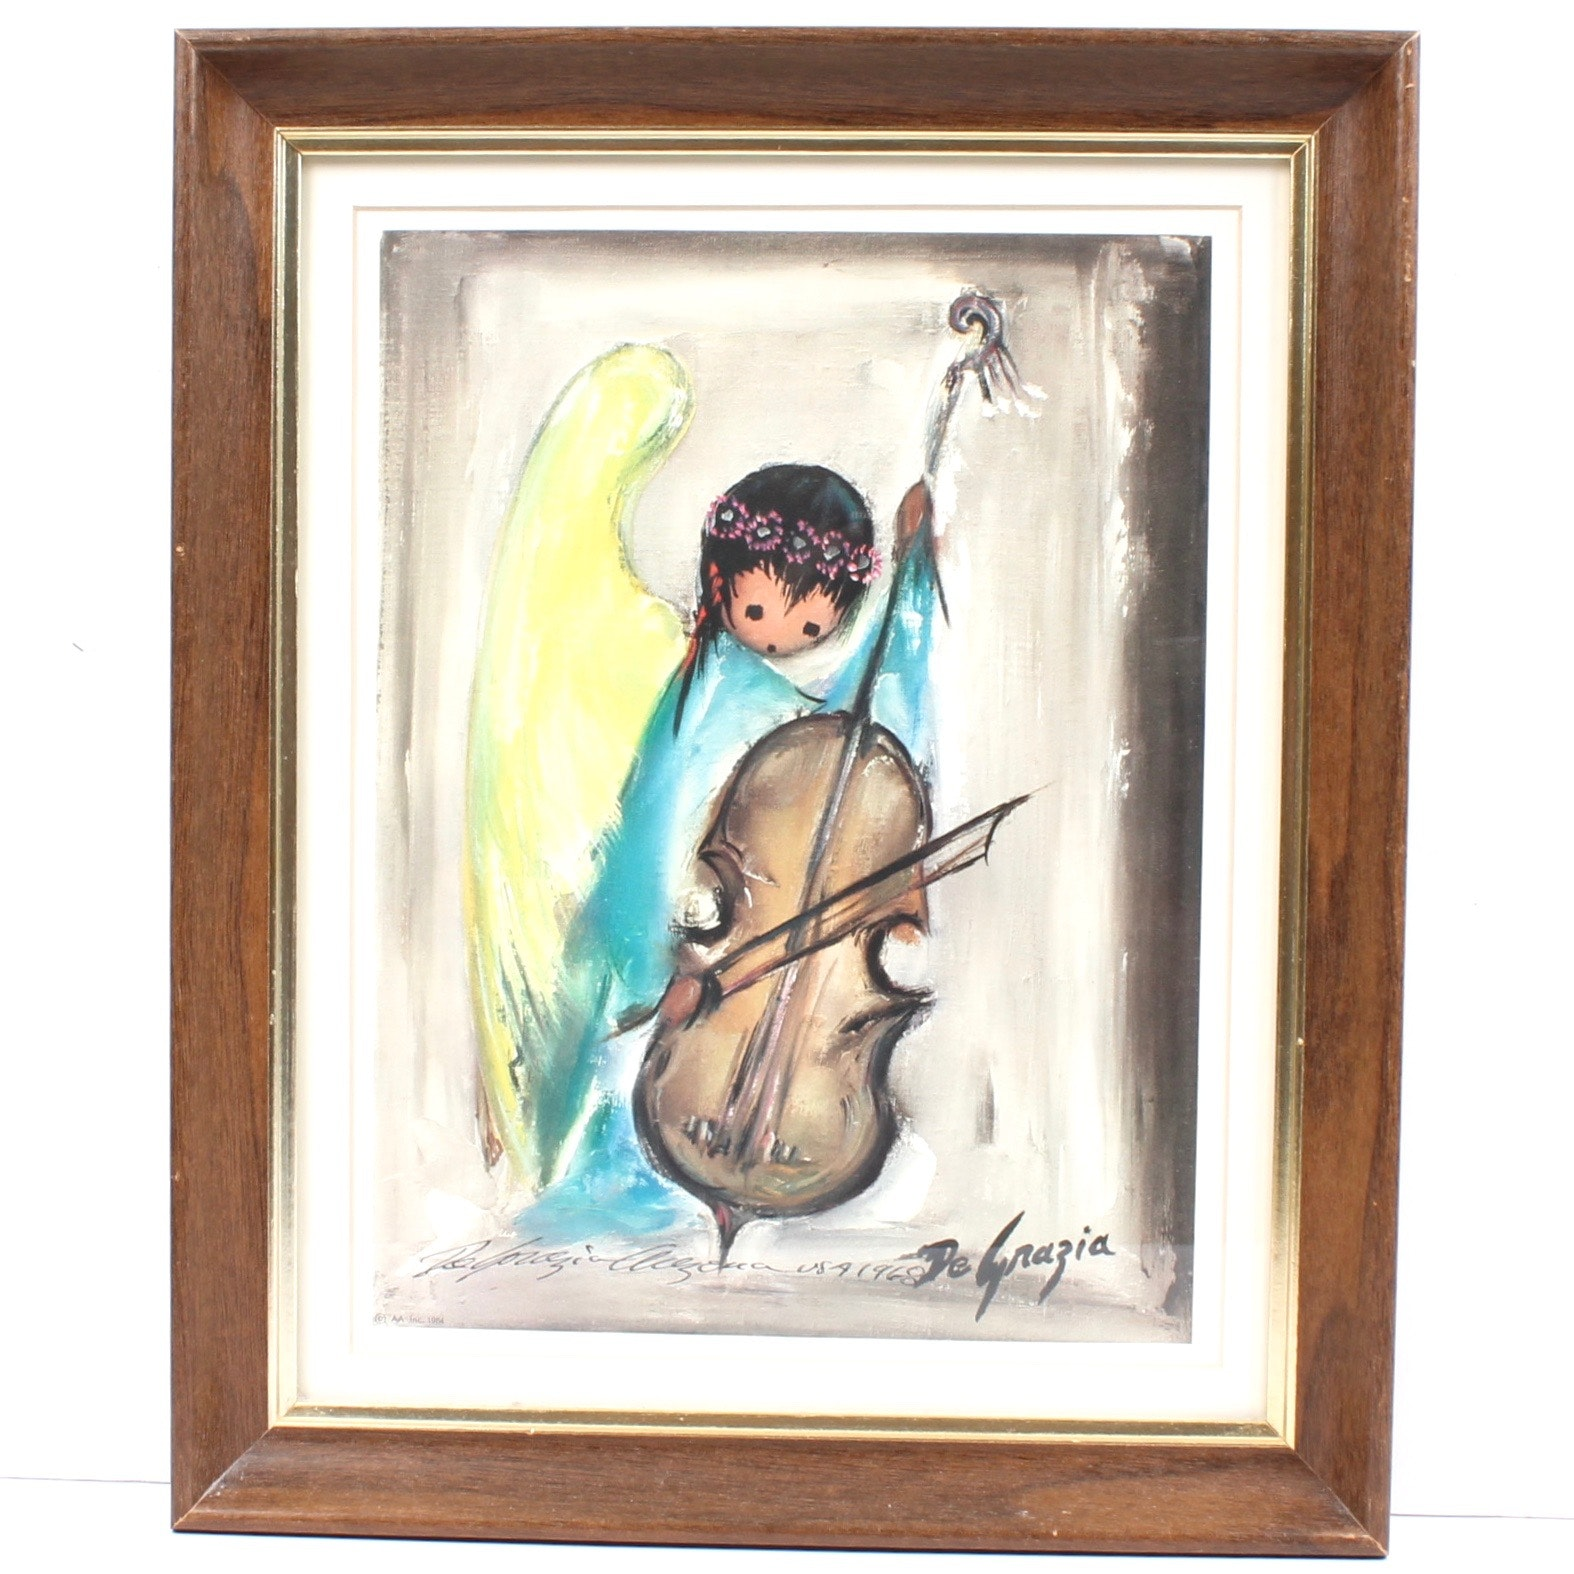 Ettore DeGrazia Signed 1968 Offset Lithograph Print